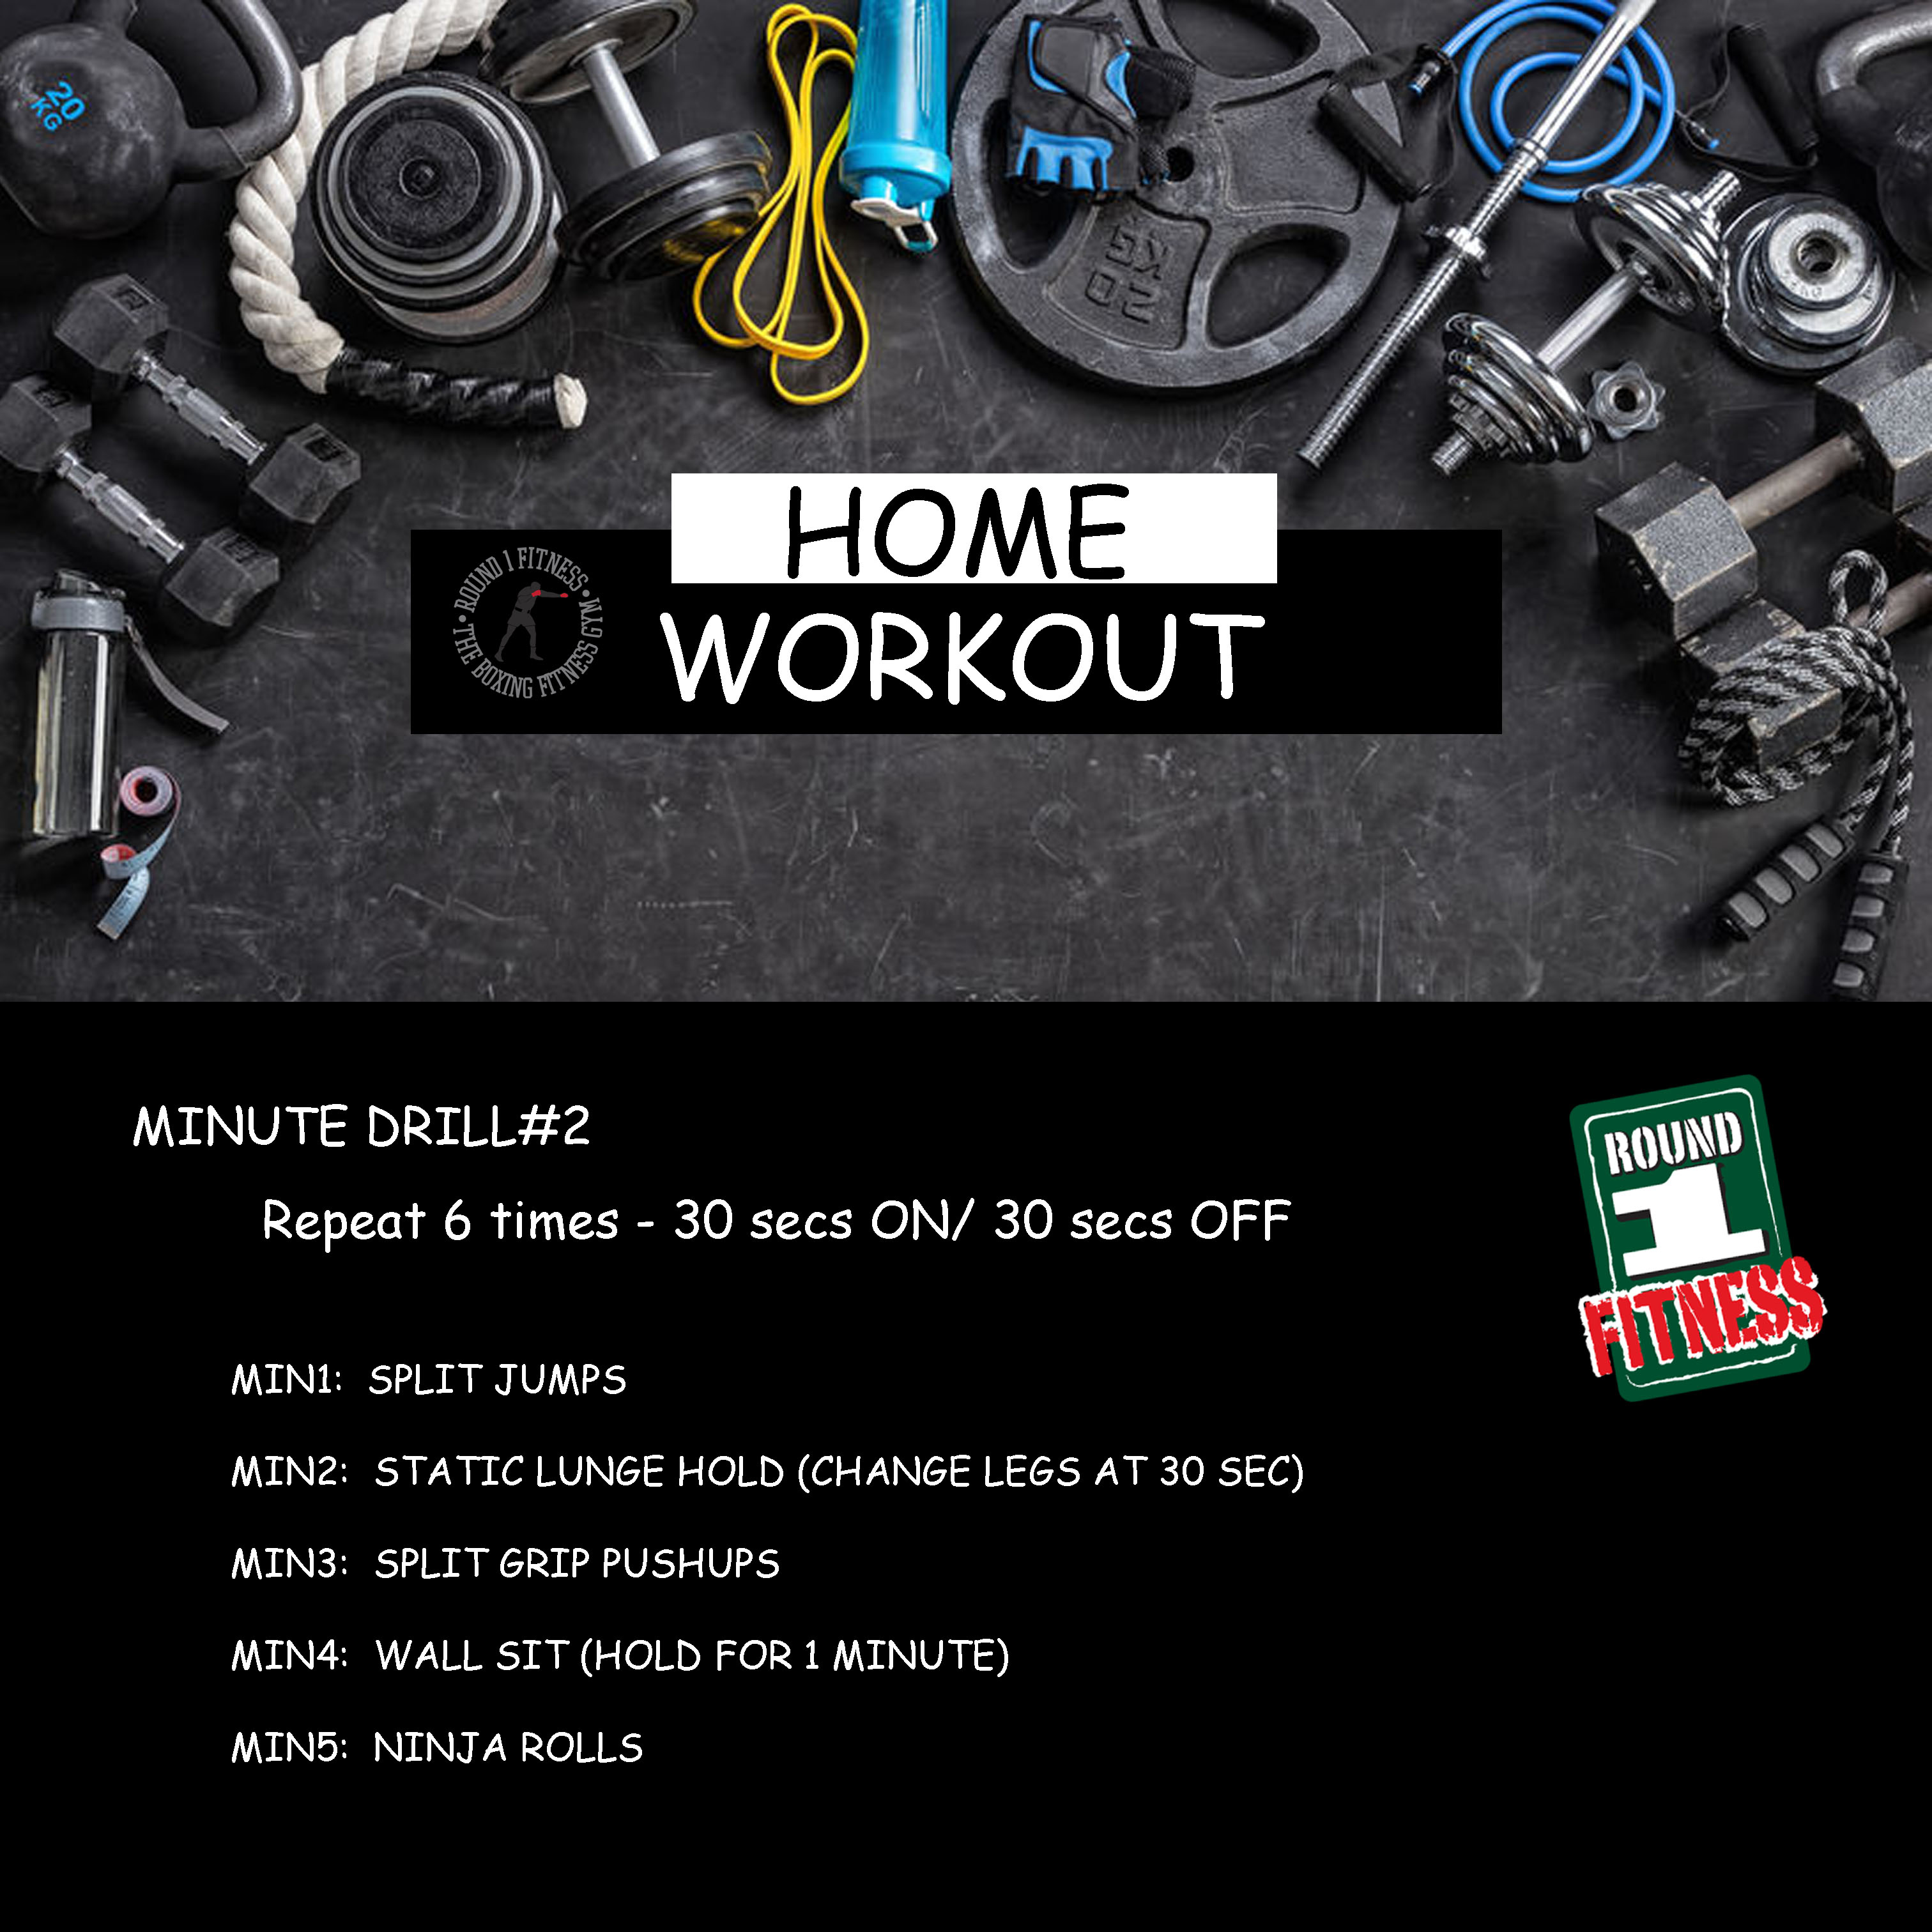 Home Workout:  Thursday May 14th